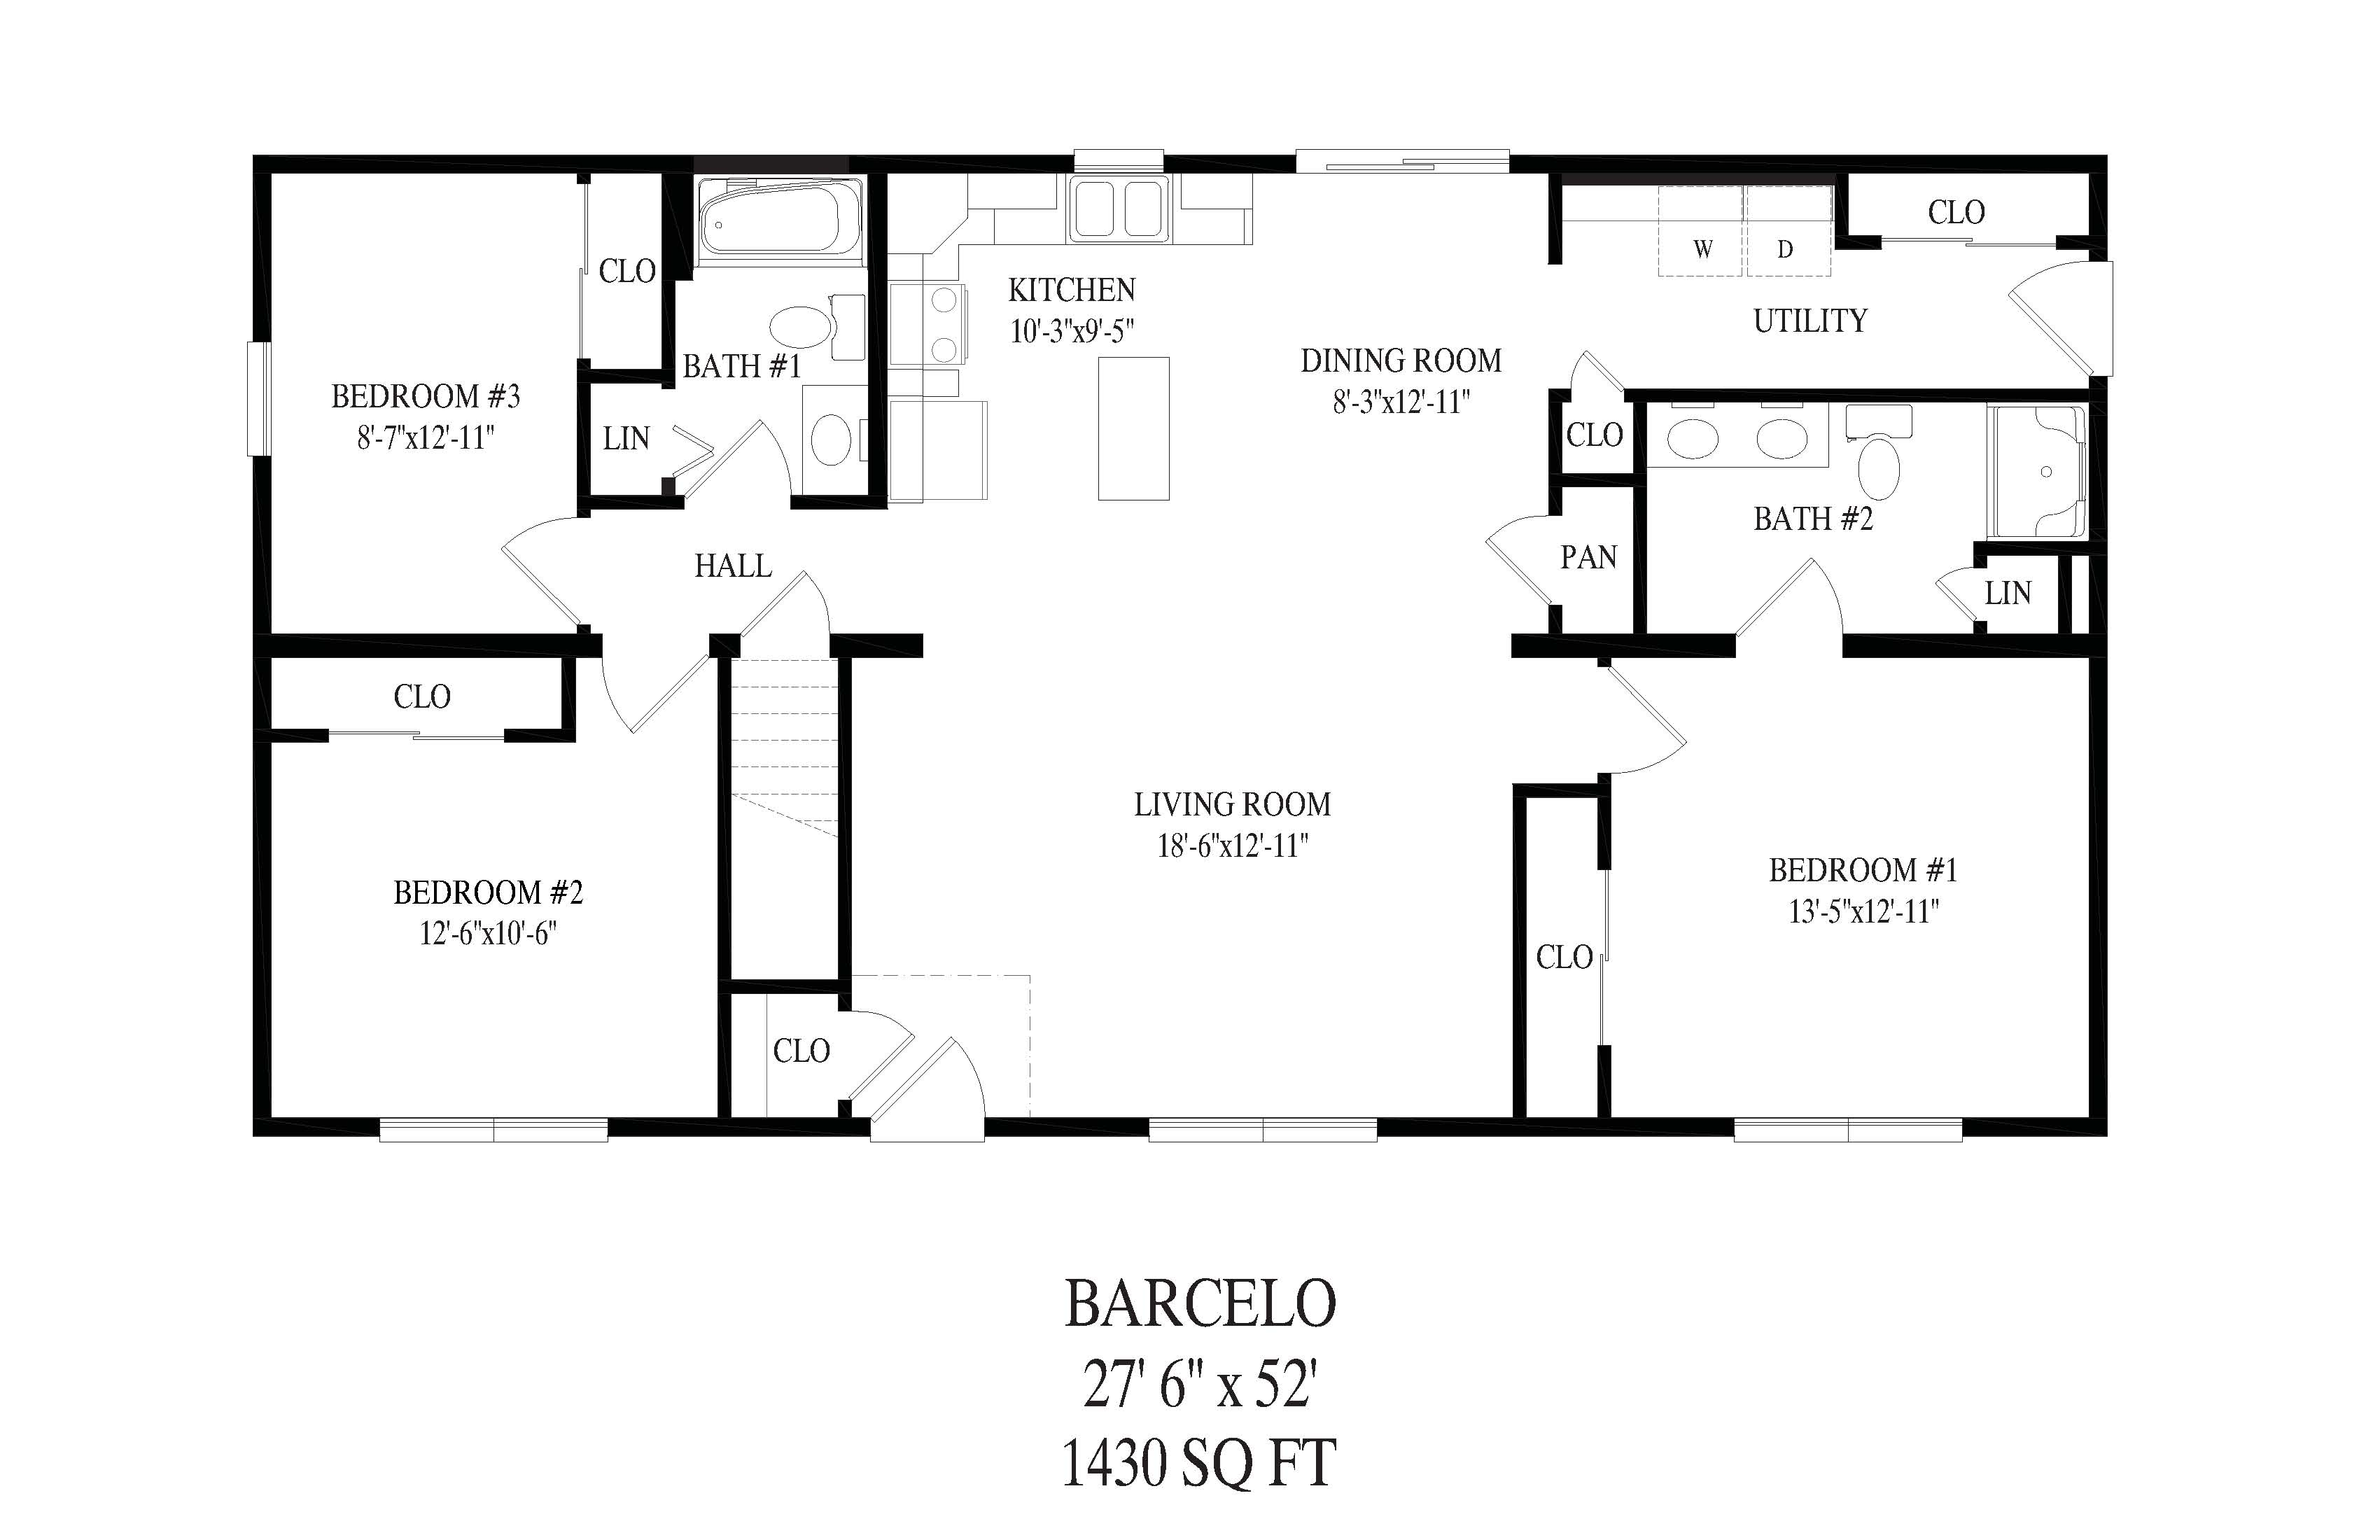 this http://custombuildingsystems.net/wp-content/uploads/2018/06/Barcelo-floor-plan.jpg